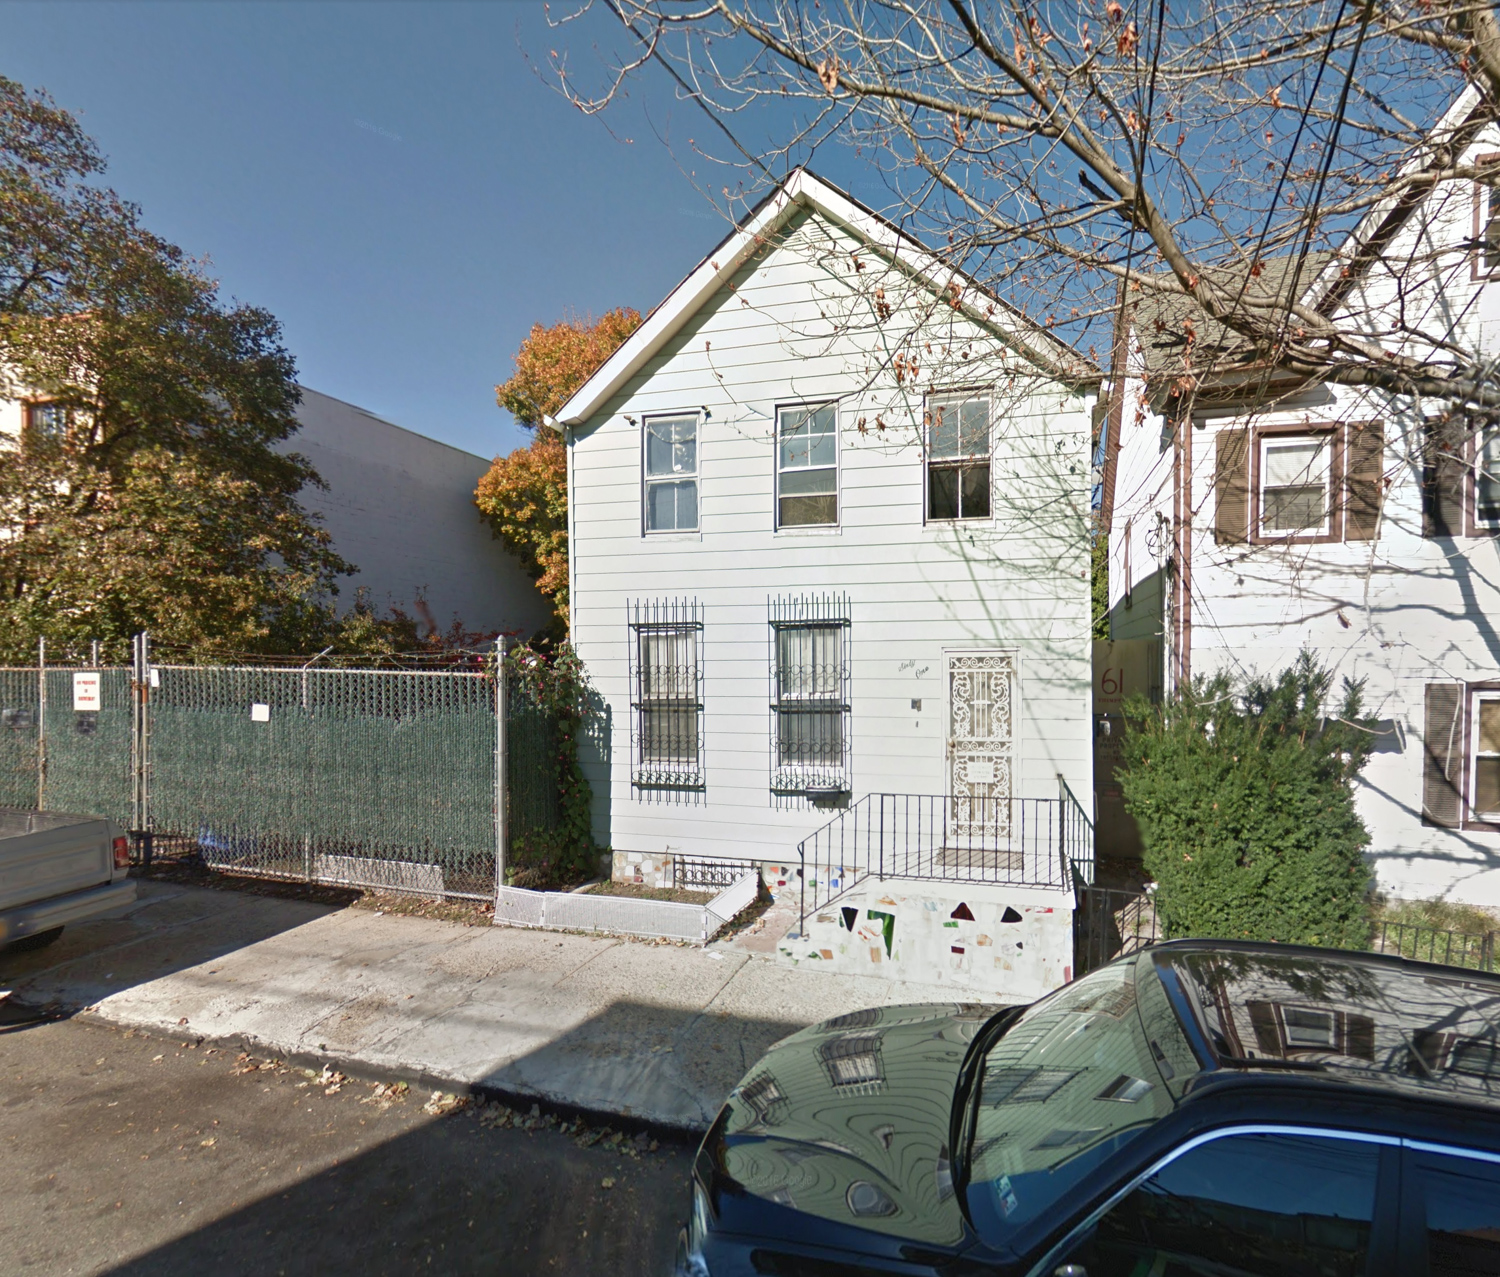 Permits Filed For 61, 63, 65, And 67 Thompson Street